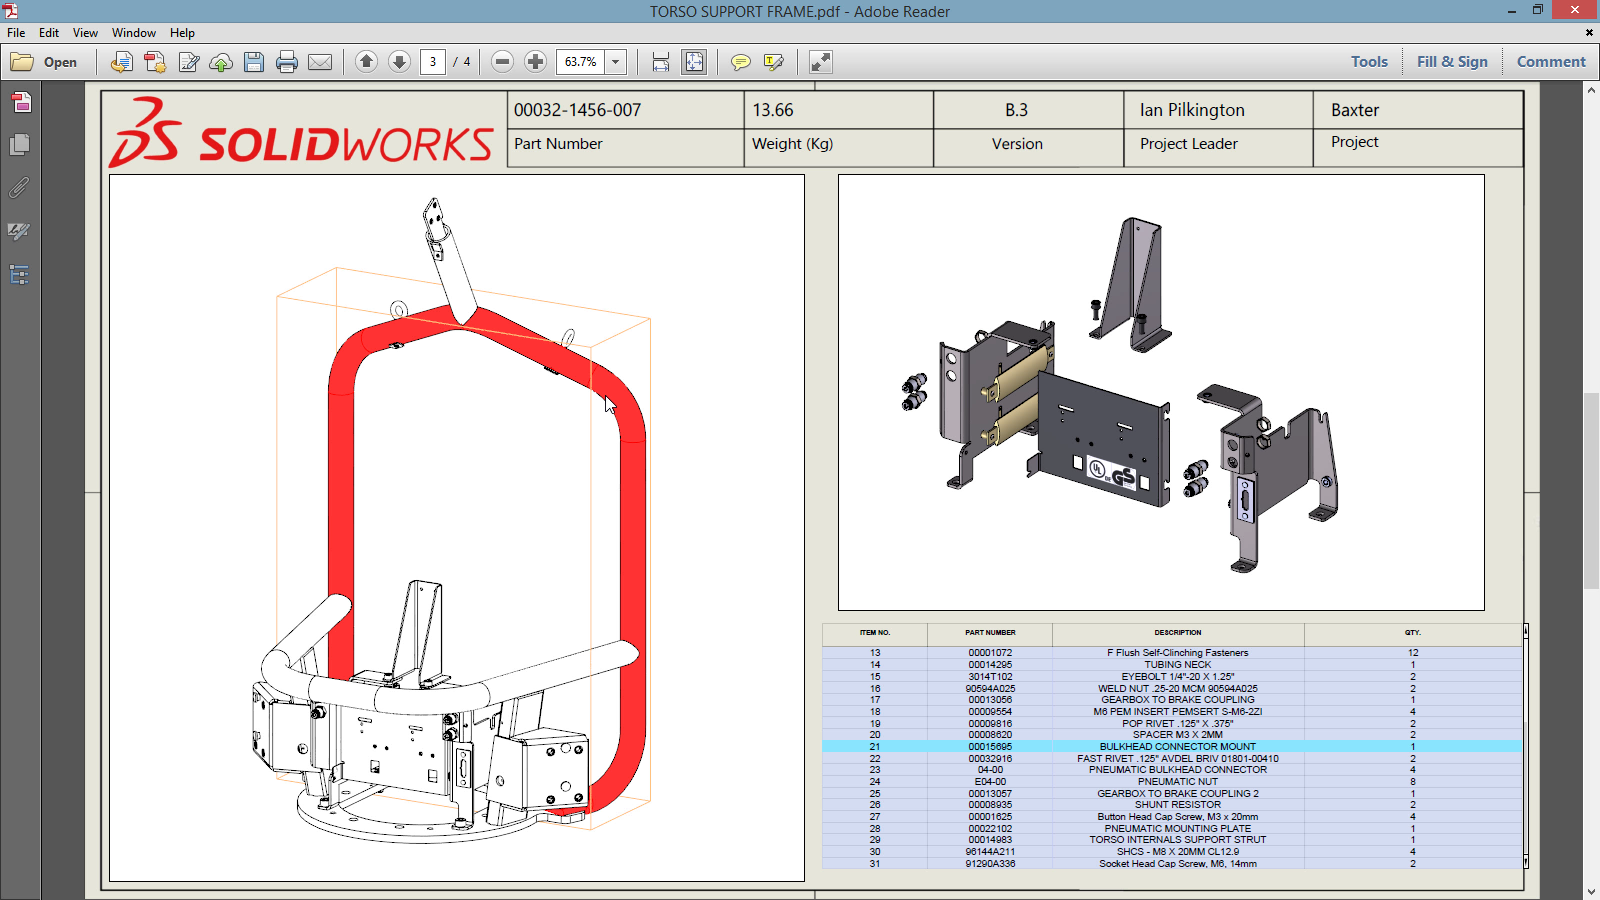 2012 engineering pdf design with solidworks